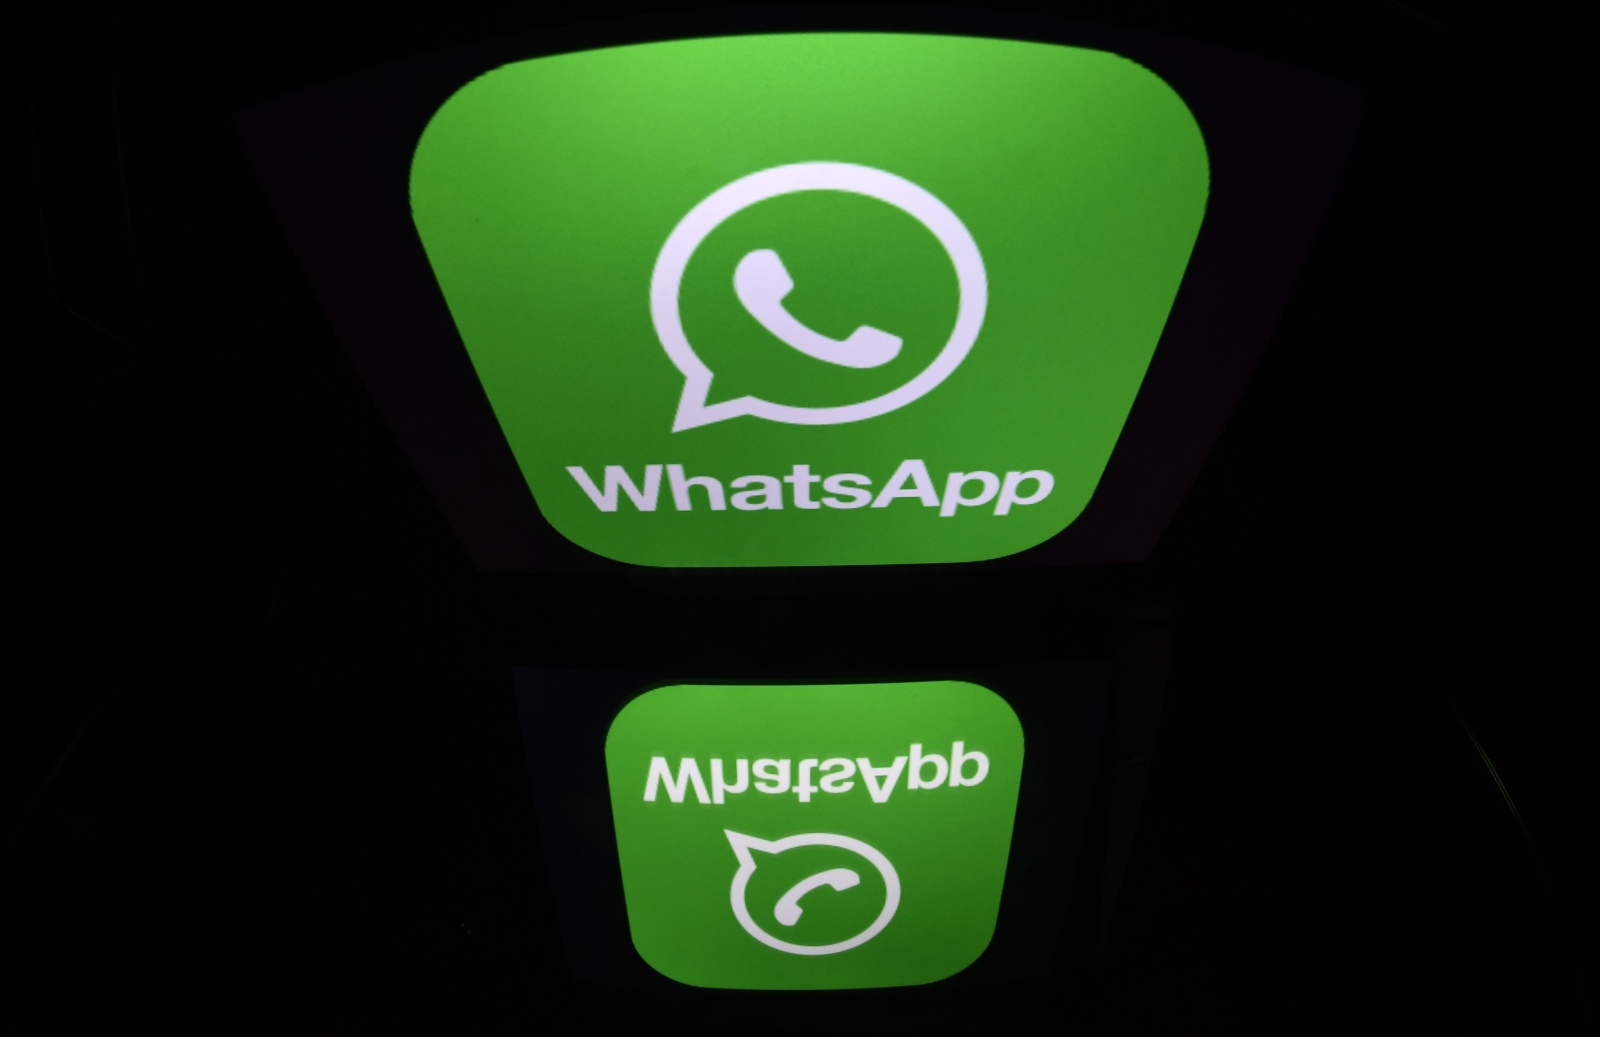 WhatsApp to stop working for older phones